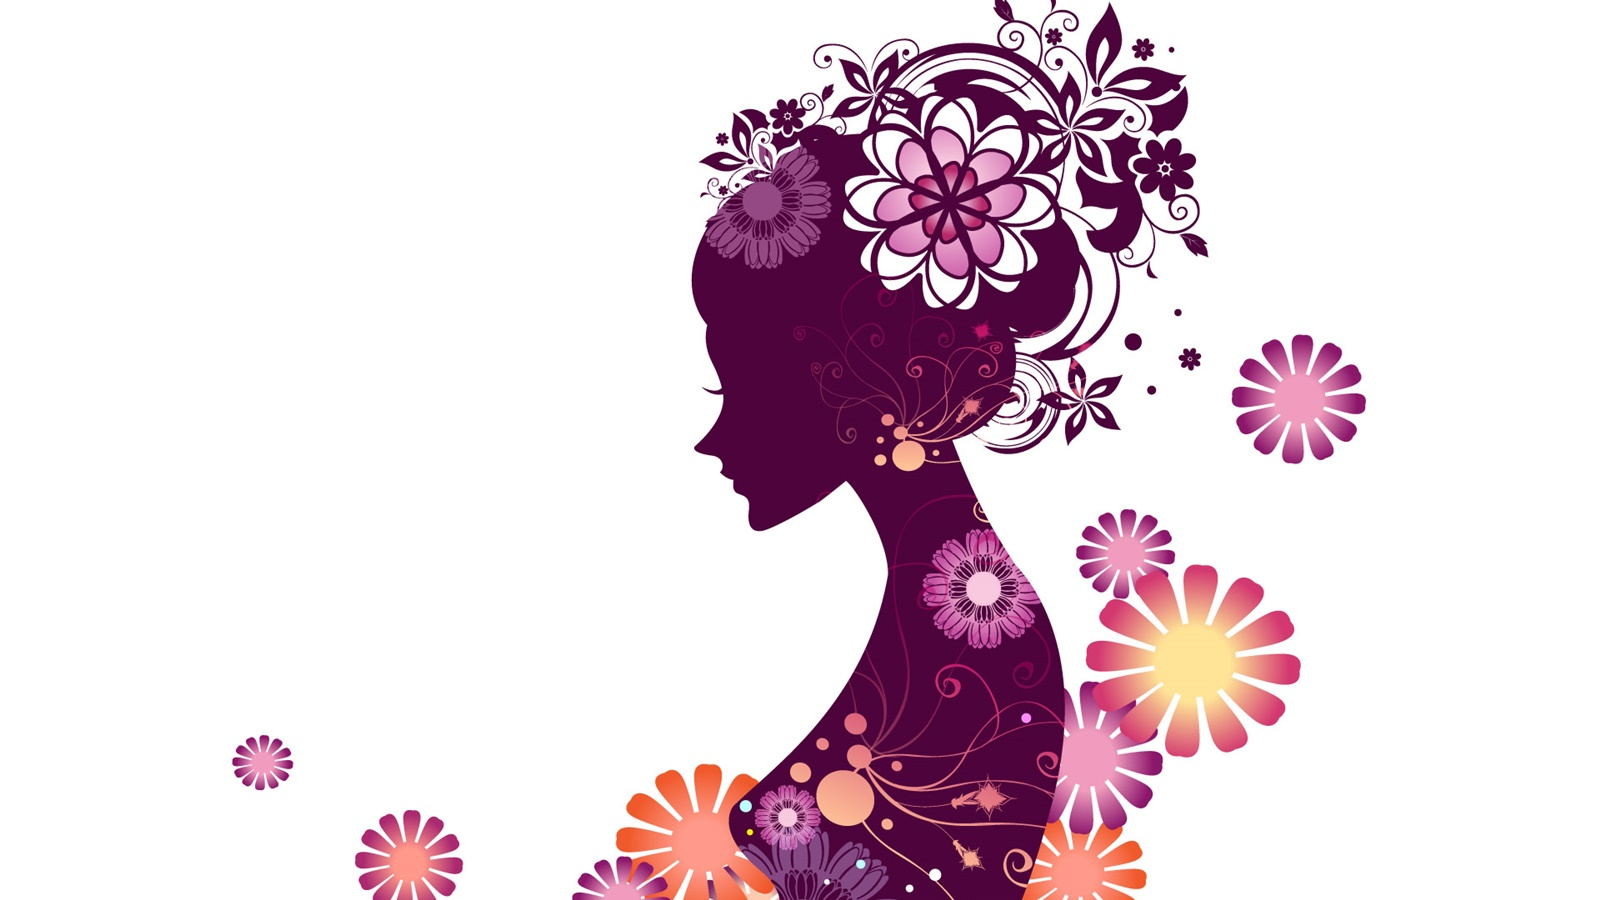 Vector young girl, flowers, white background 1600x900 wallpaper